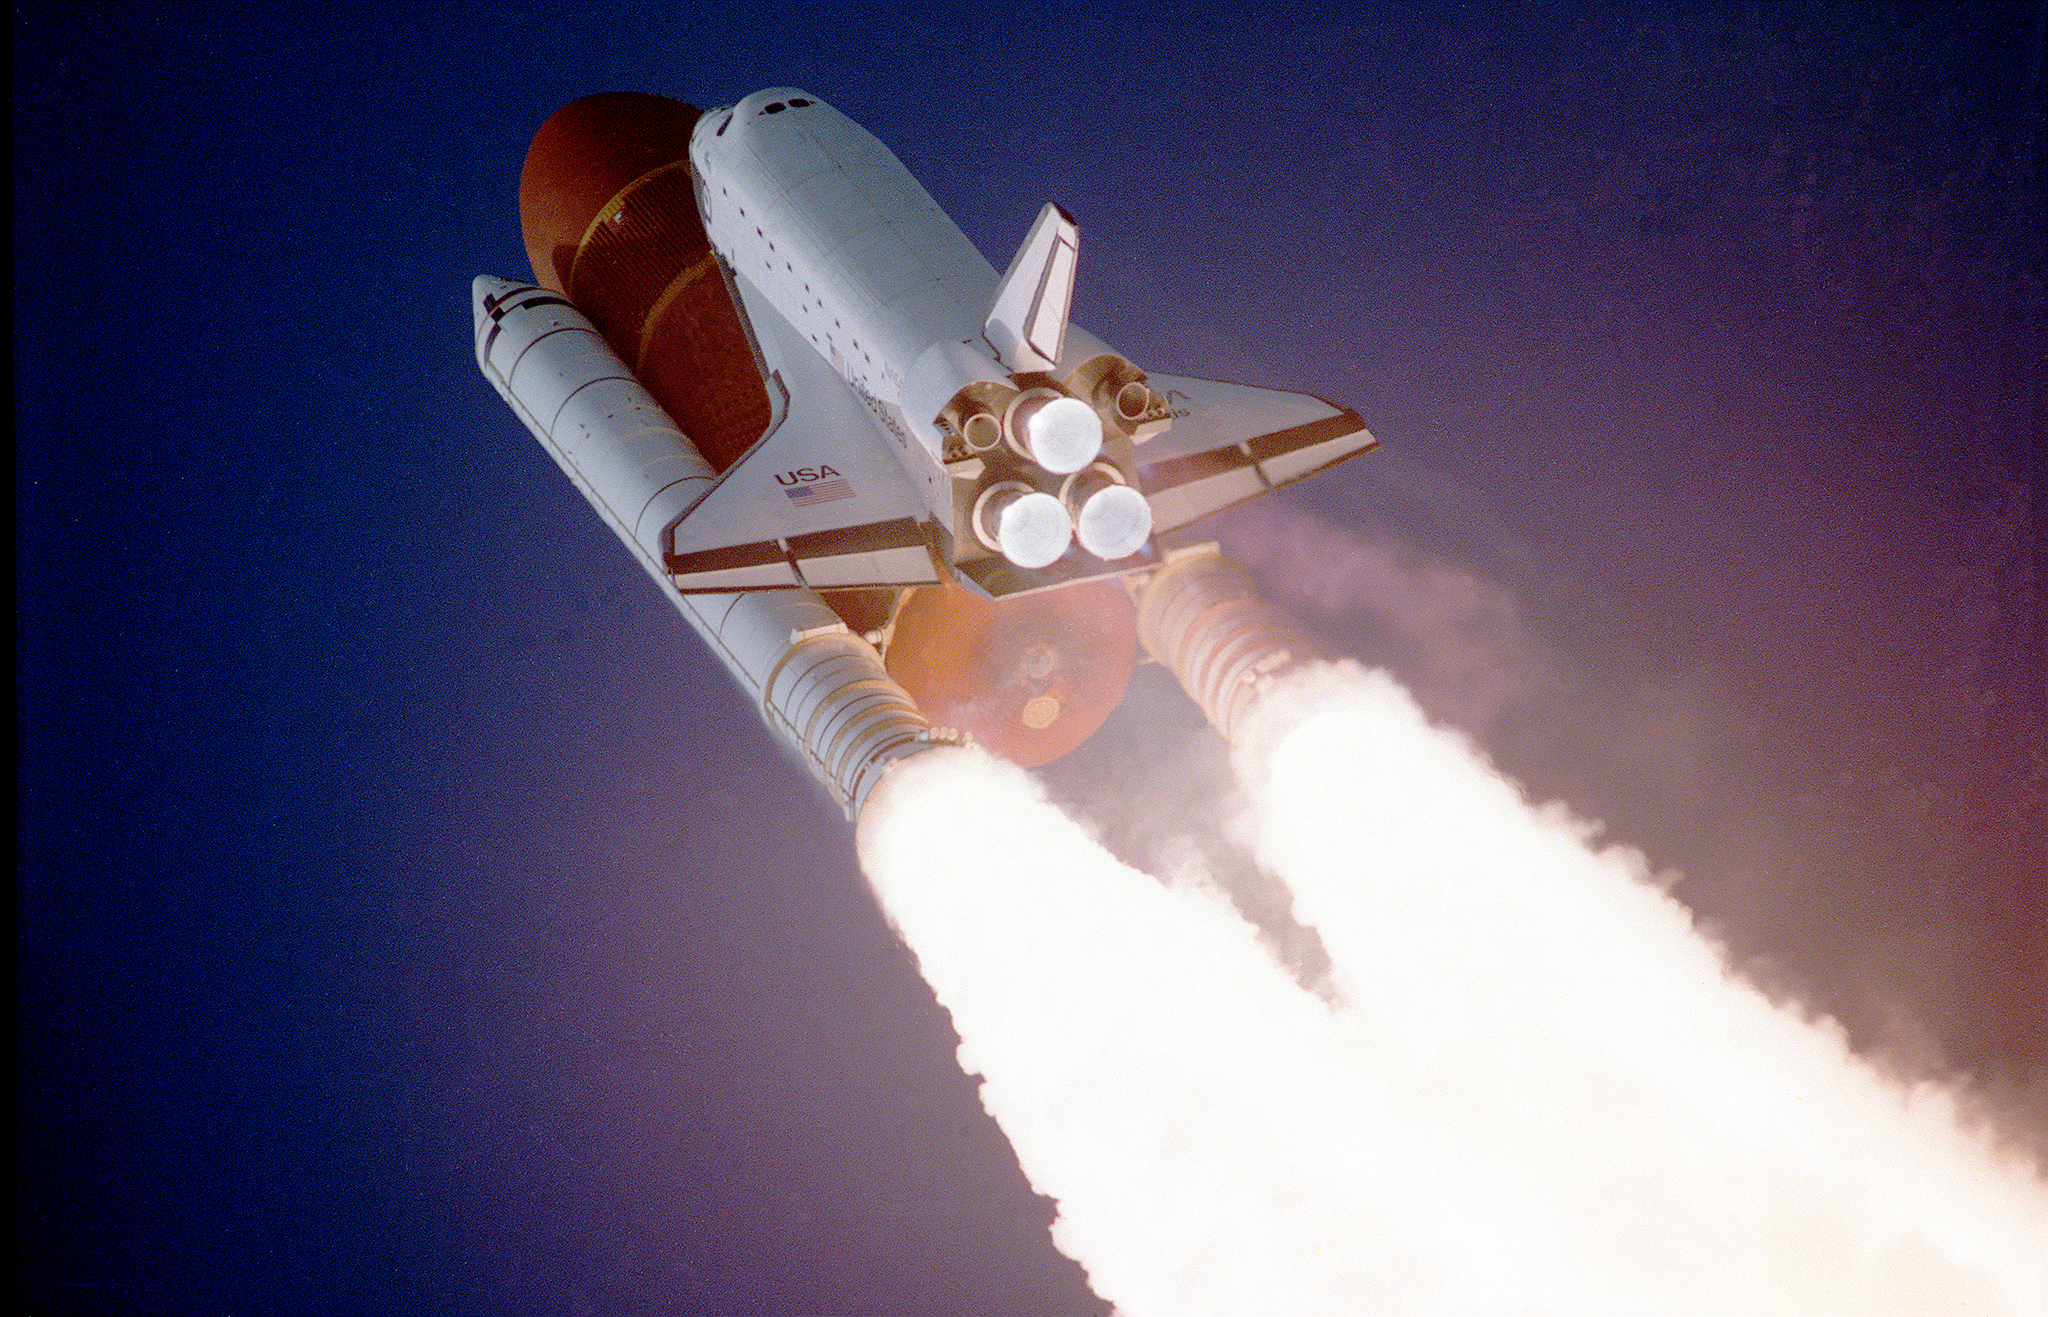 NASA STS-27, Orbiter Atlantis, Liftoff